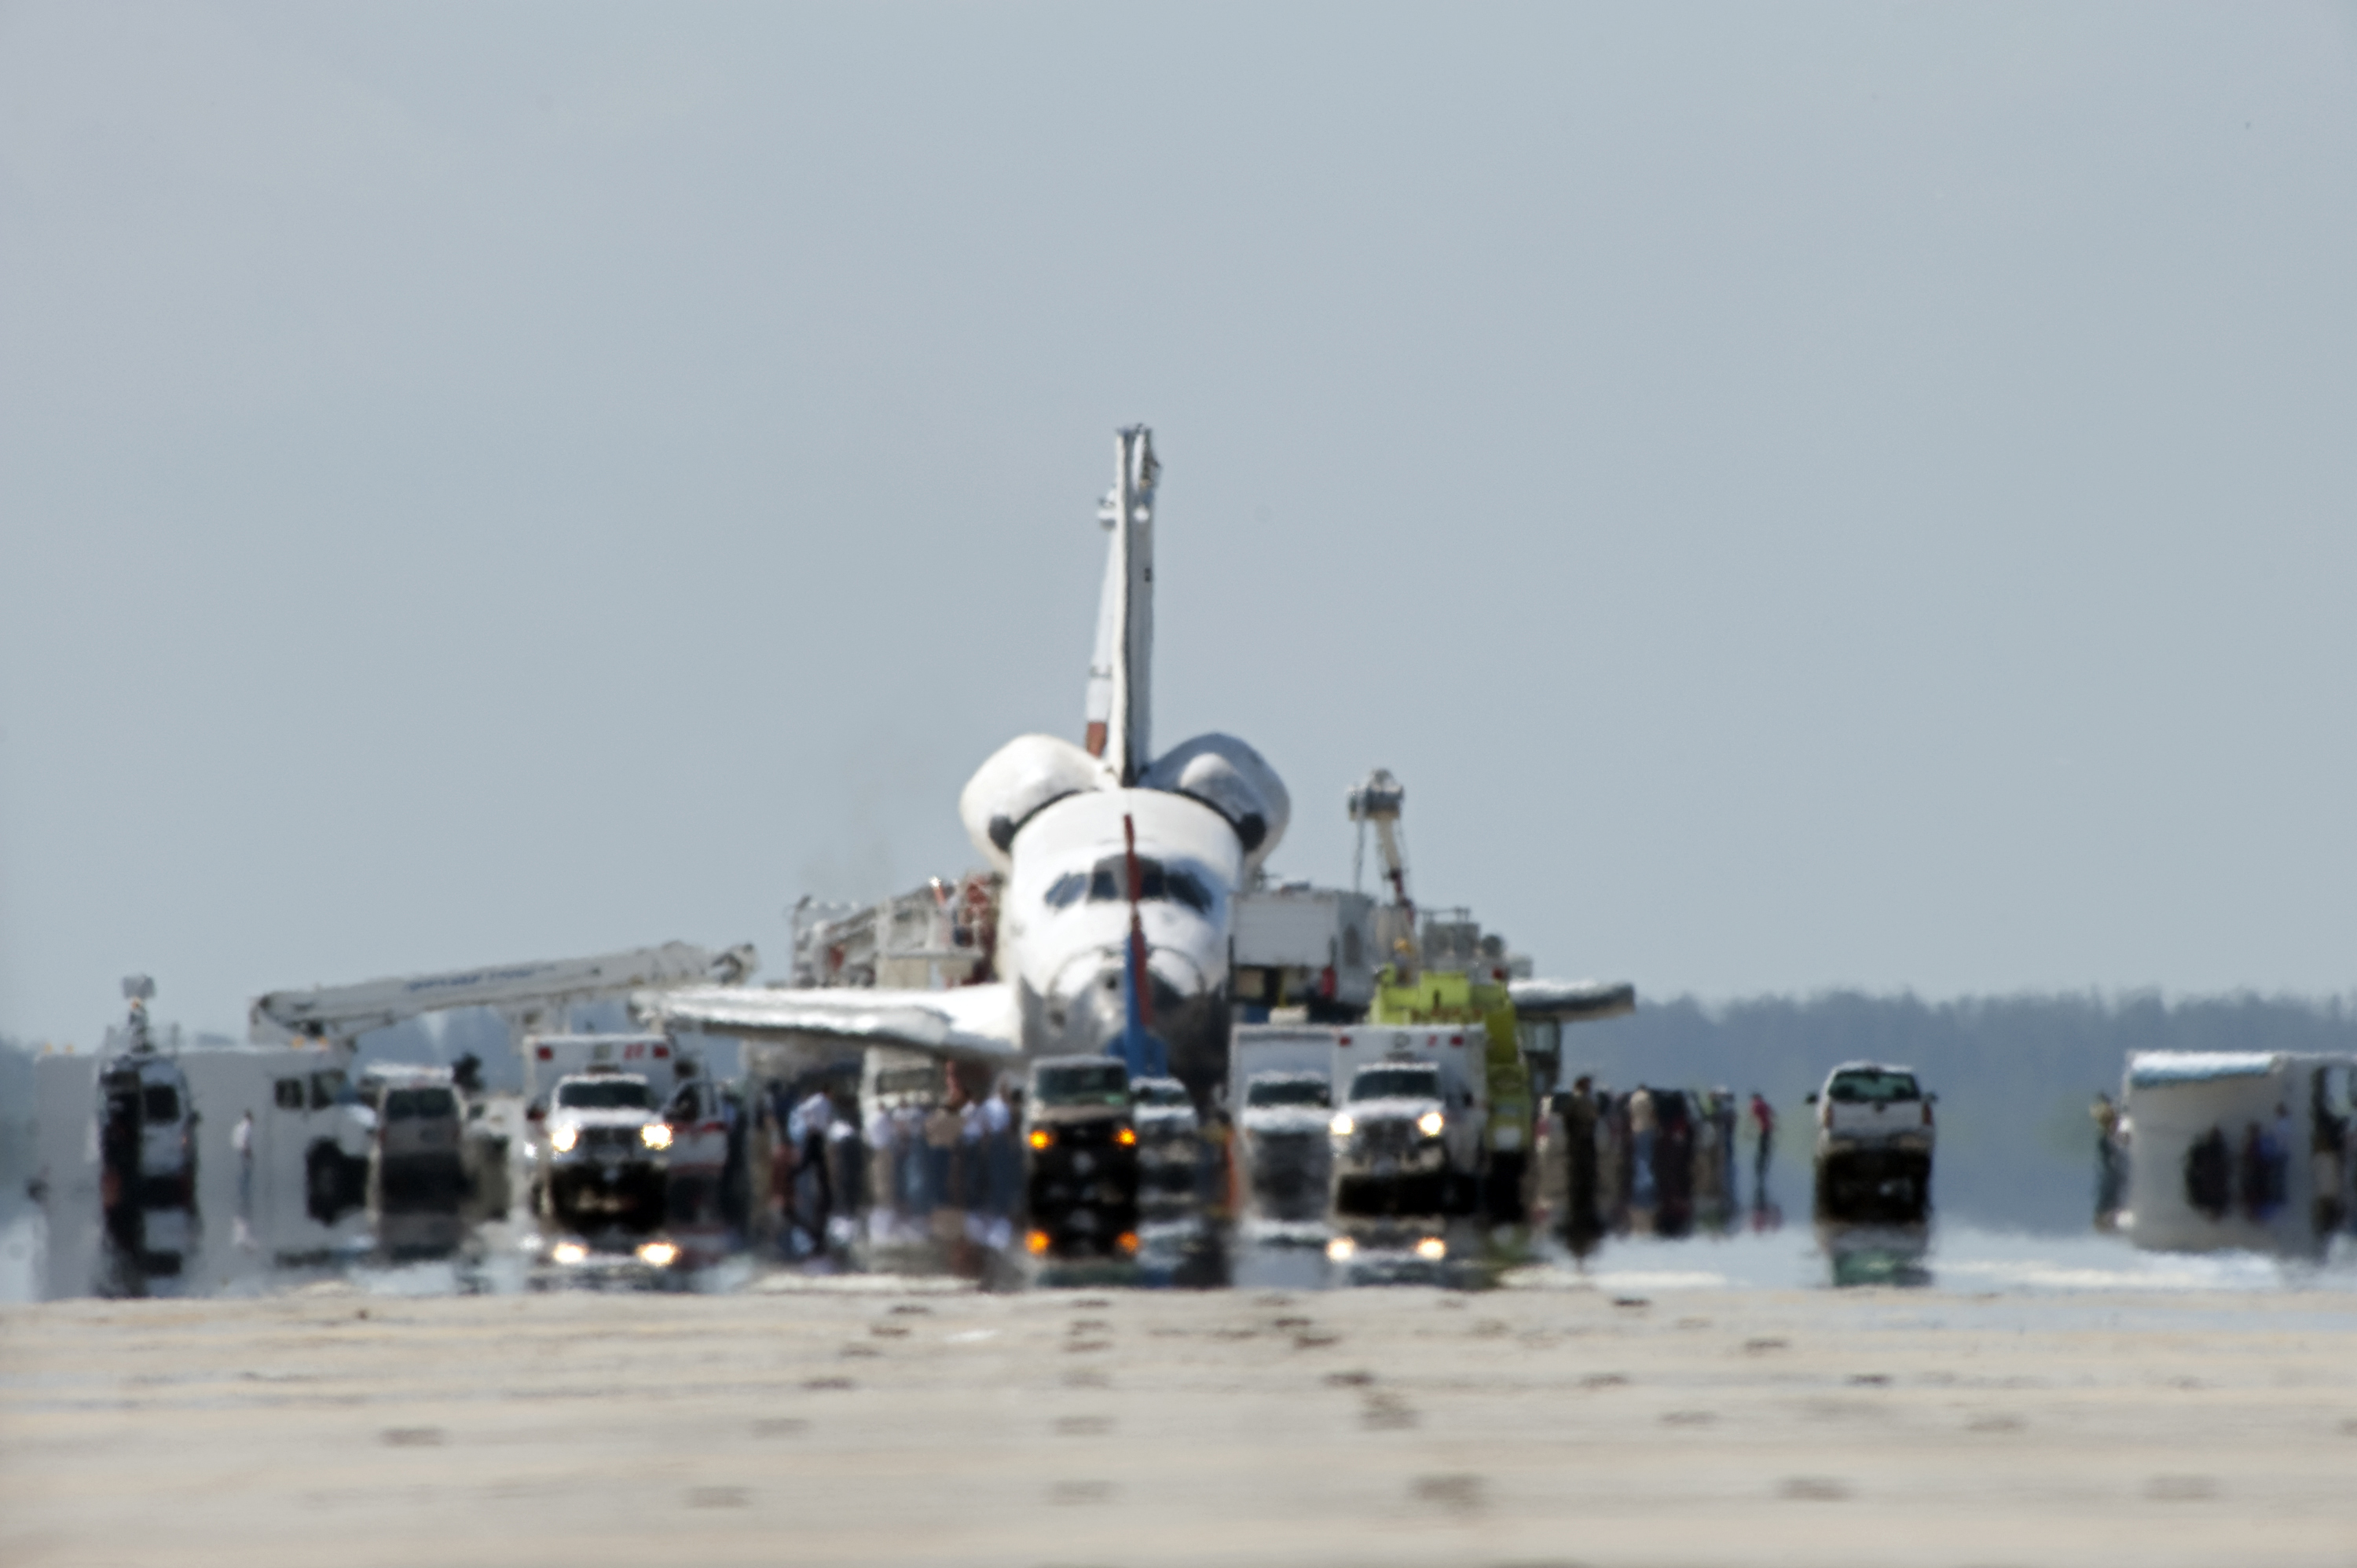 space shuttle runway - photo #32